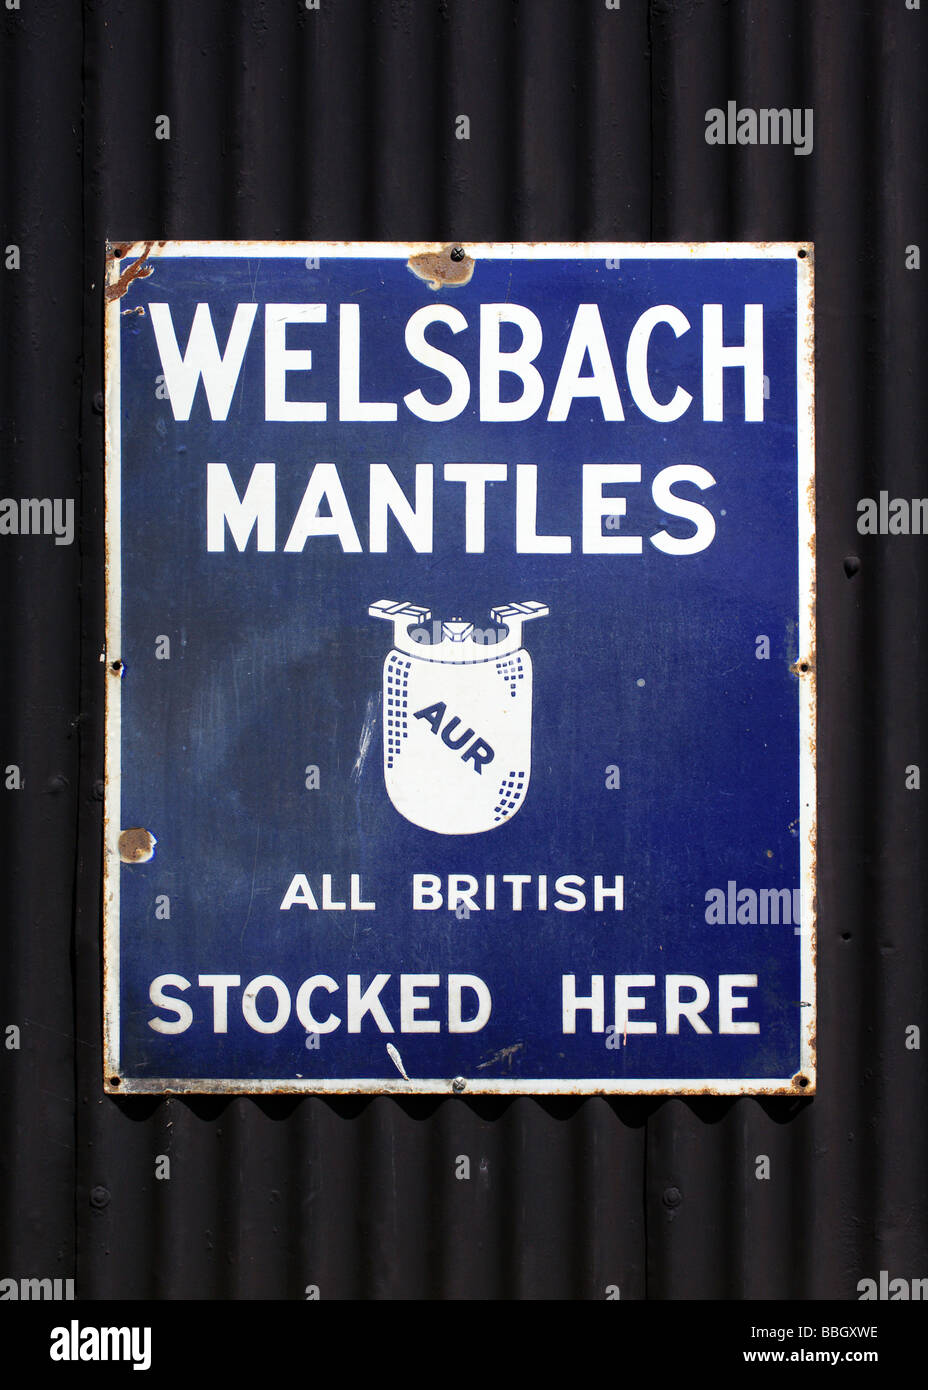 Old advertising sign at Carrog railway station on the Llangollen Steam Railway line - Stock Image